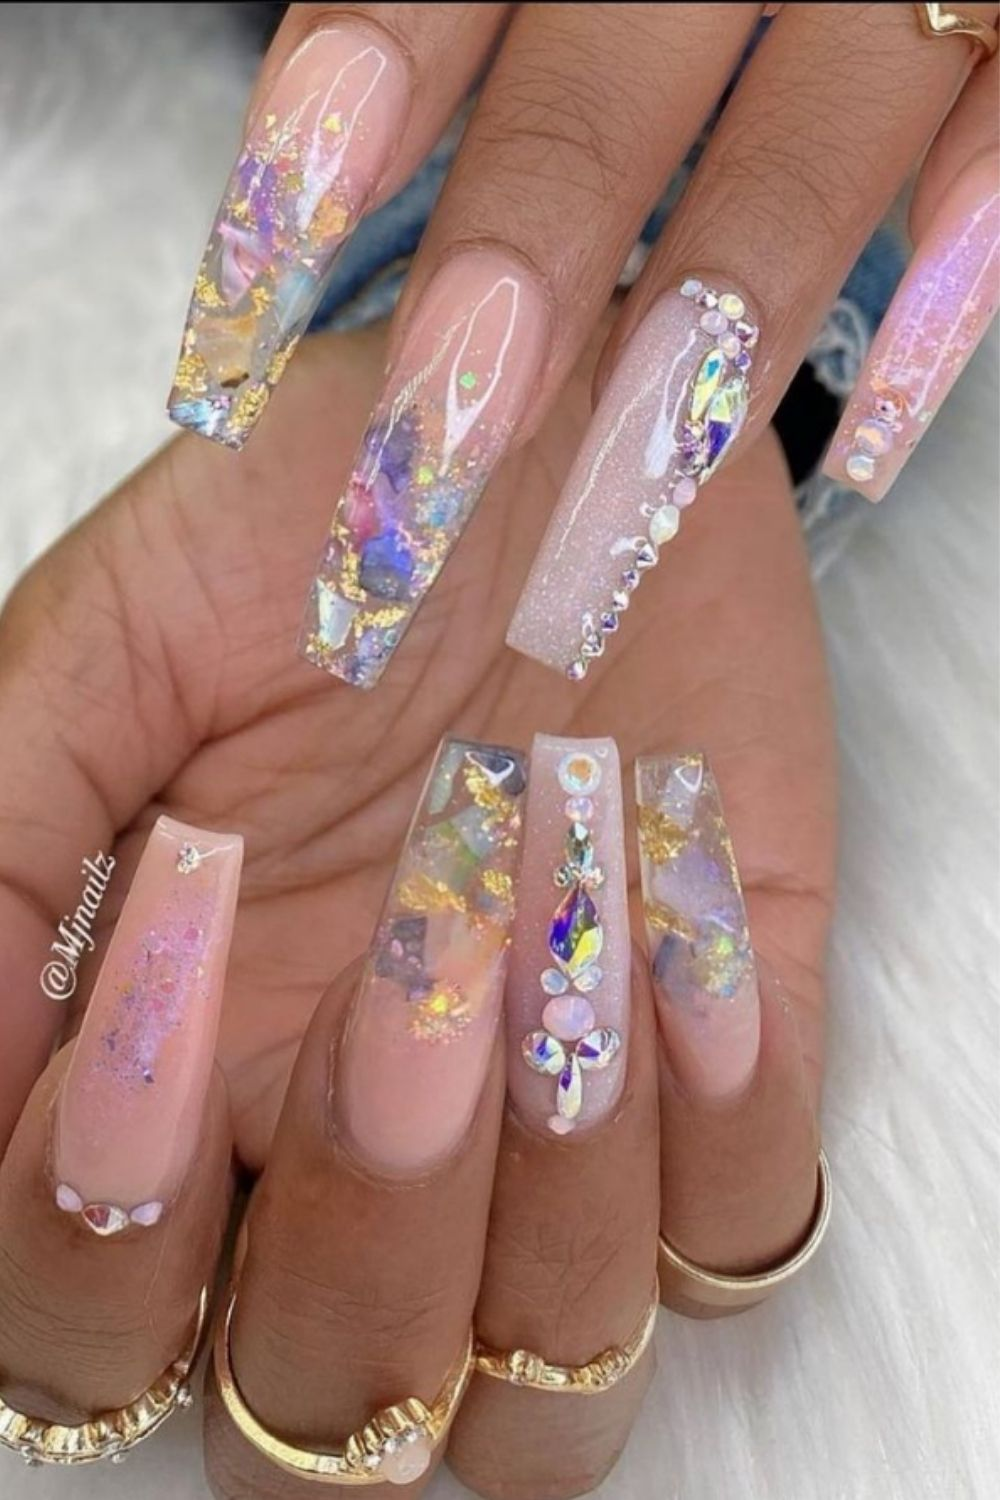 How to make your glitter ombre nails bling this Summer 2021?